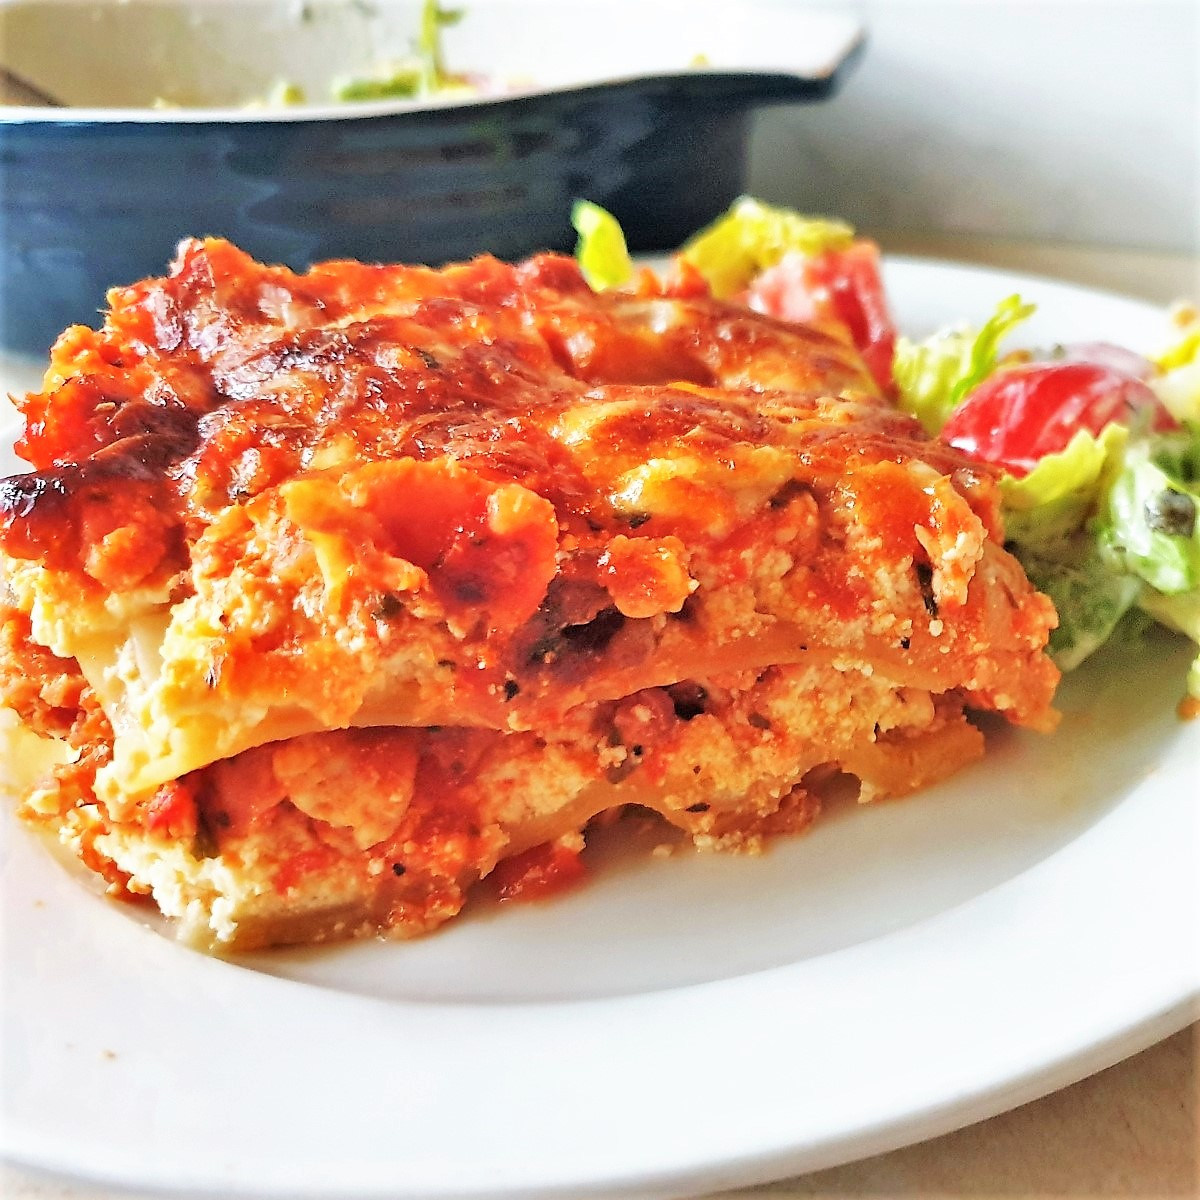 A slice of turkey and ham lasagna on a plate with salad.